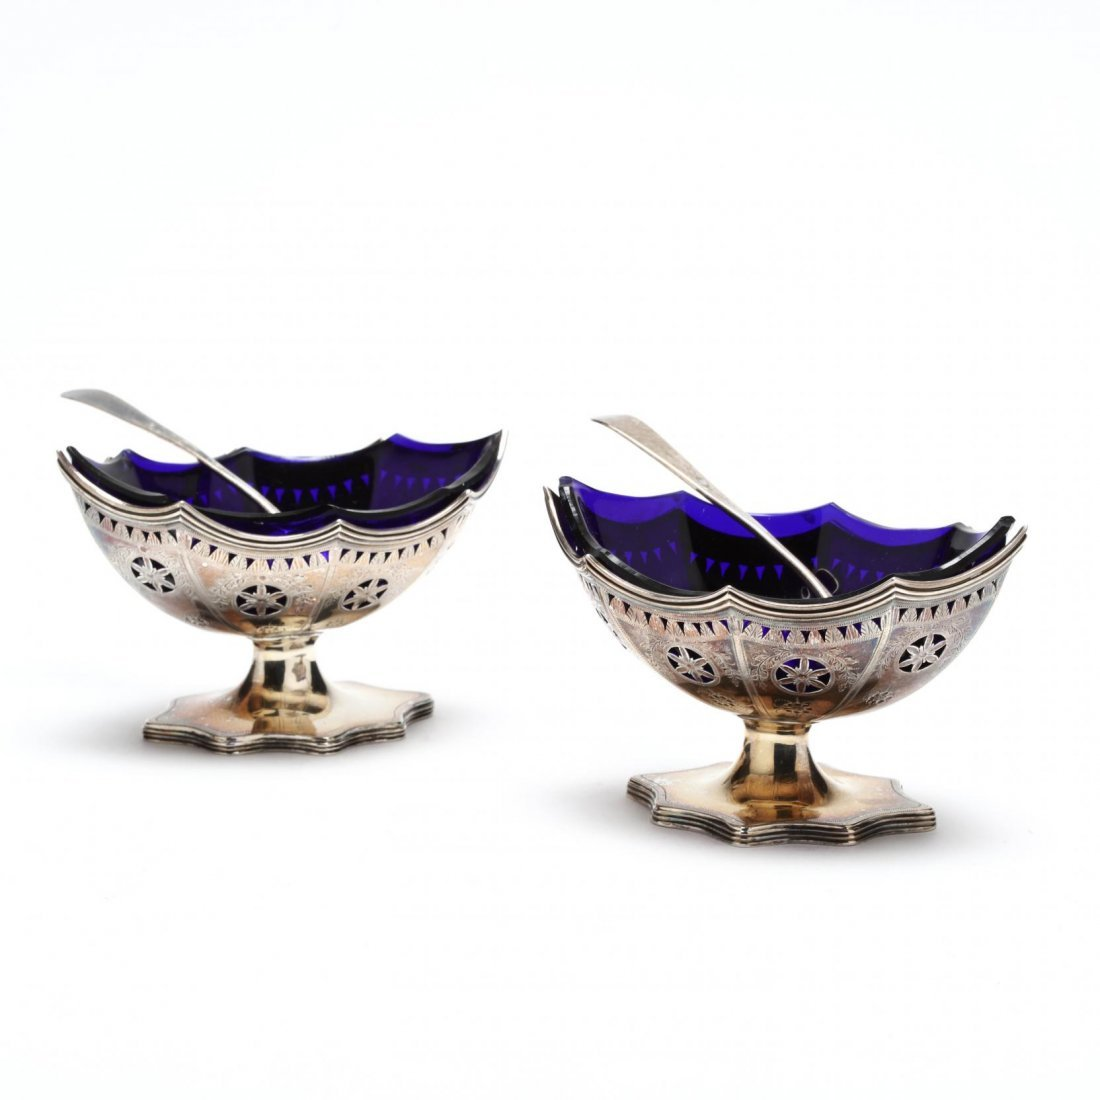 Pair of George III Silver Master Salts, Hester Bateman